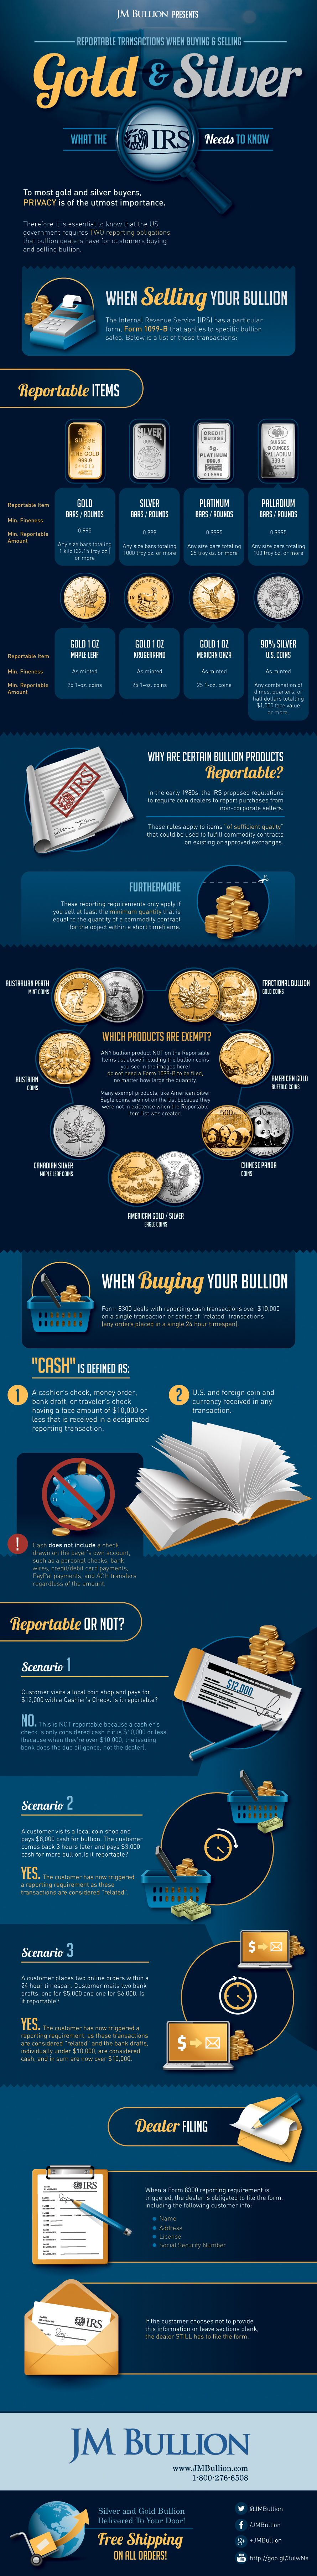 Reportable Bullion Transactions Infographic